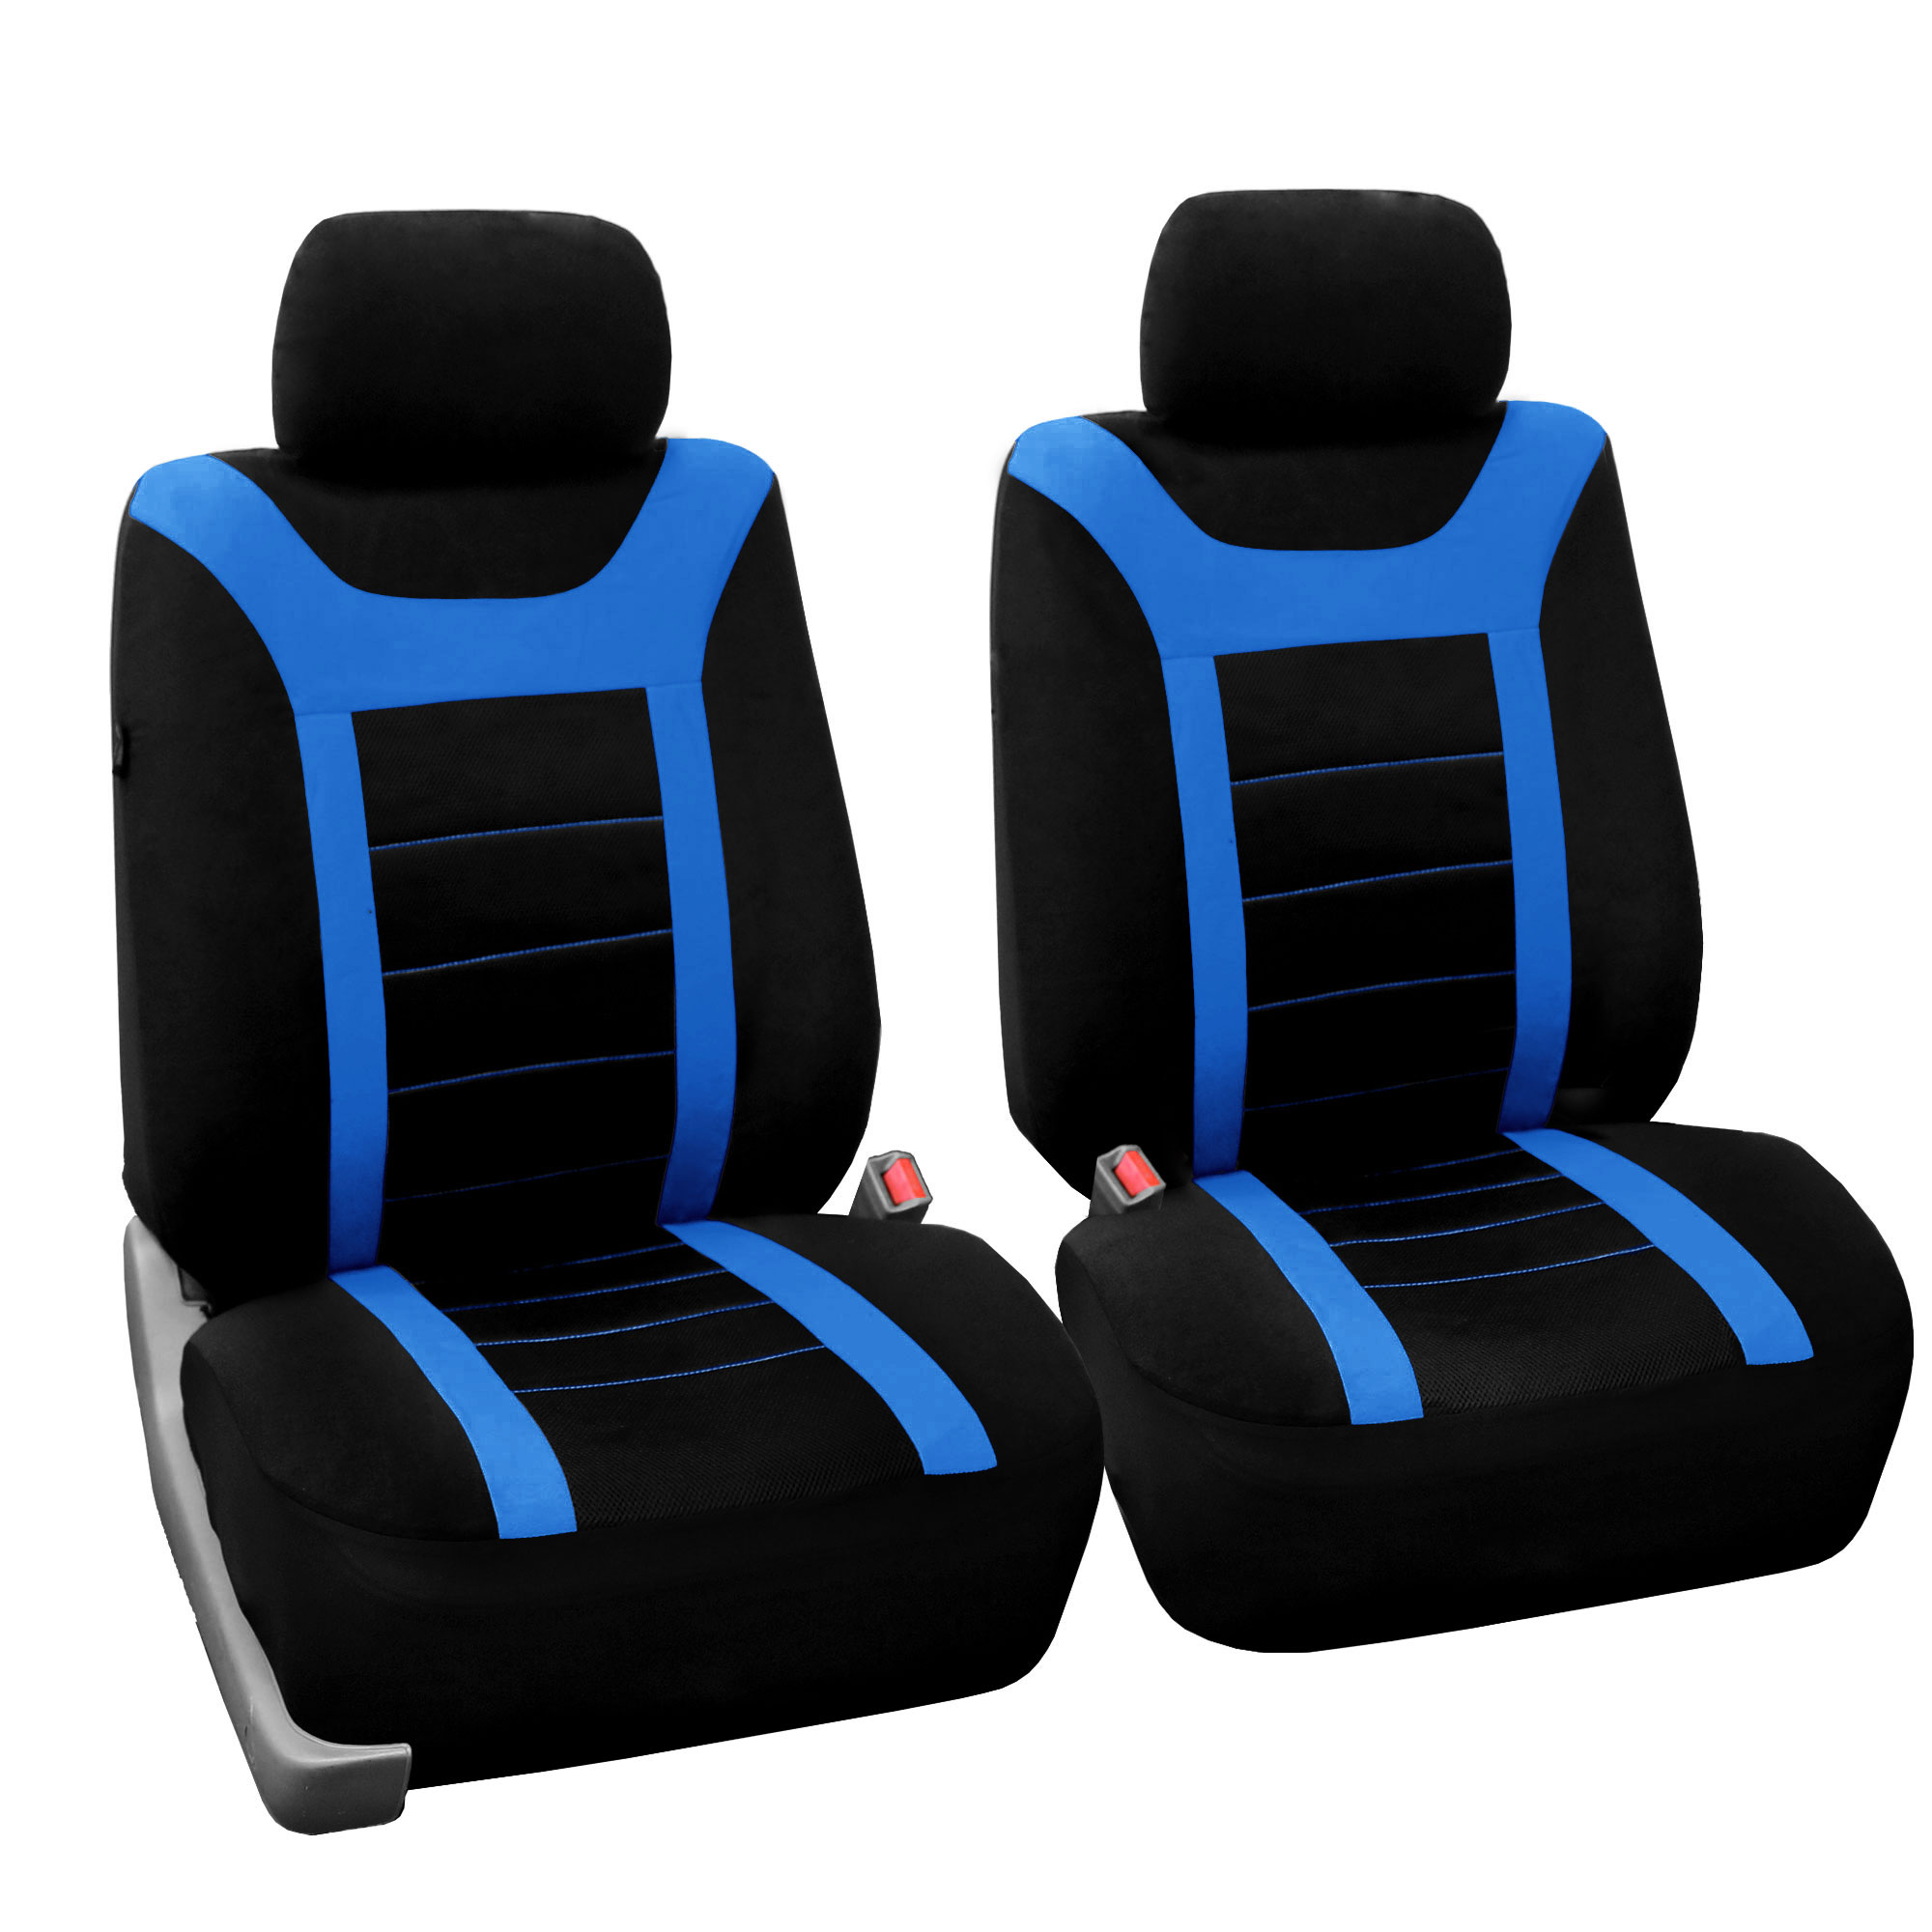 Sports Car Seat Covers Complete Set With Floor Mats Blue Ebay